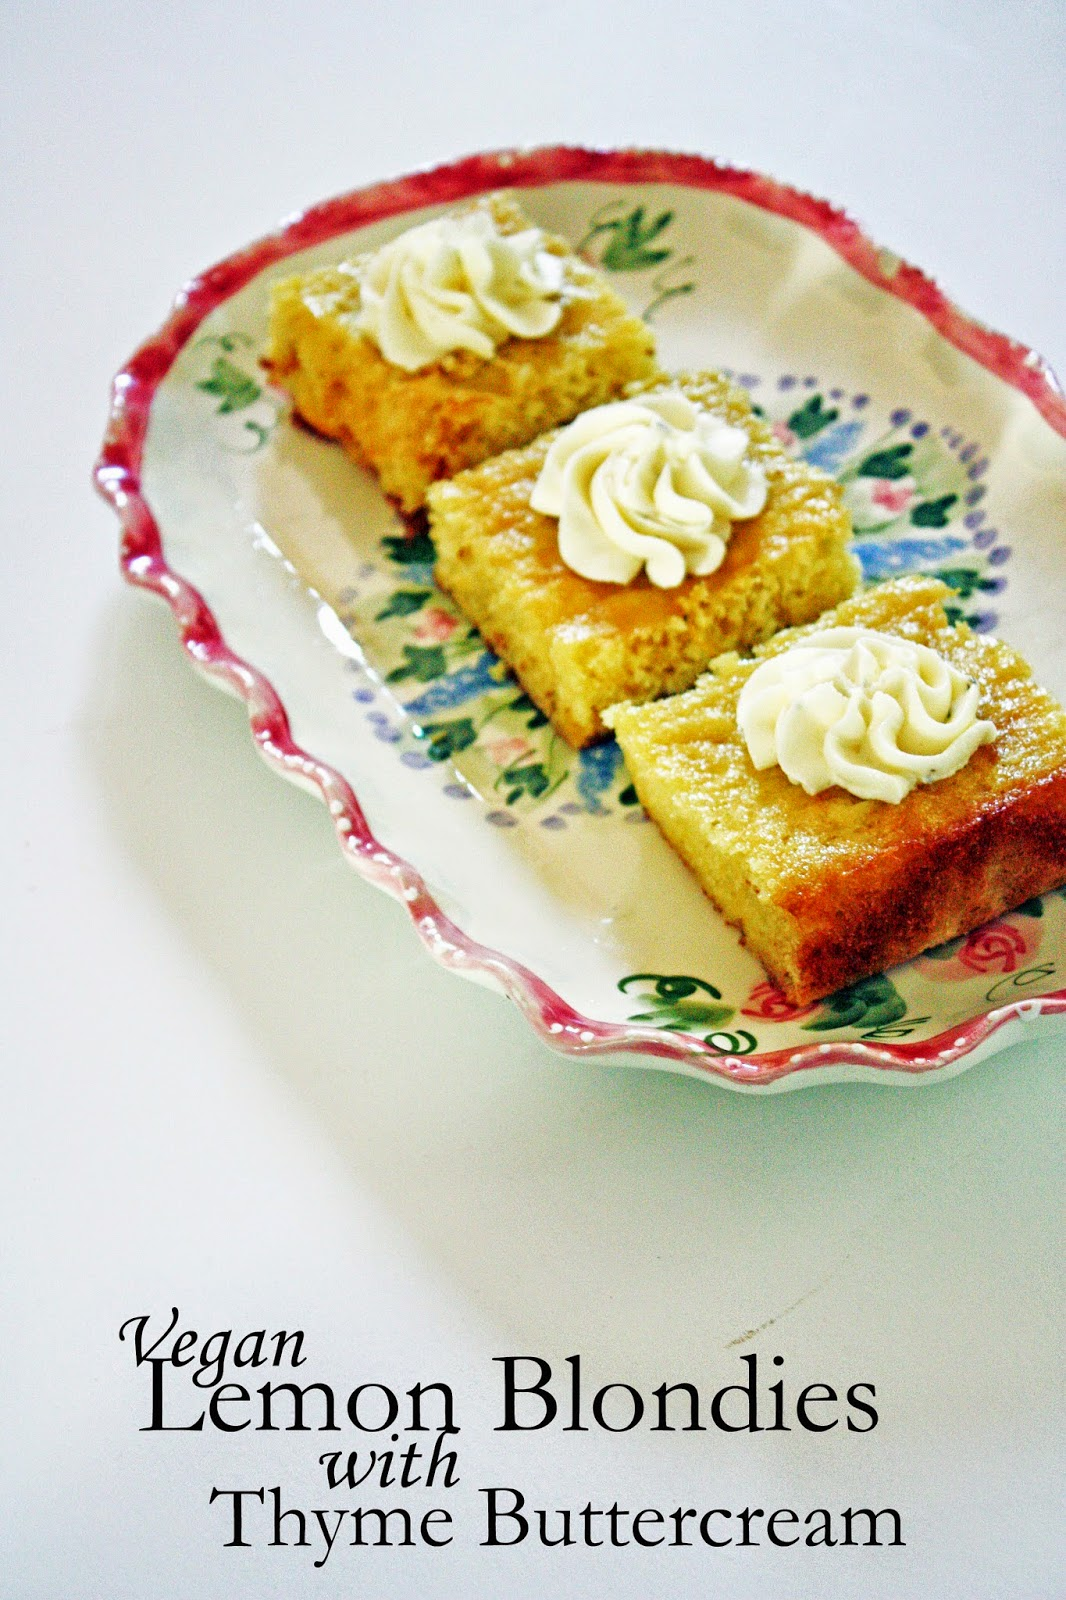 vegan lemon blondies with thyme buttercream recipe